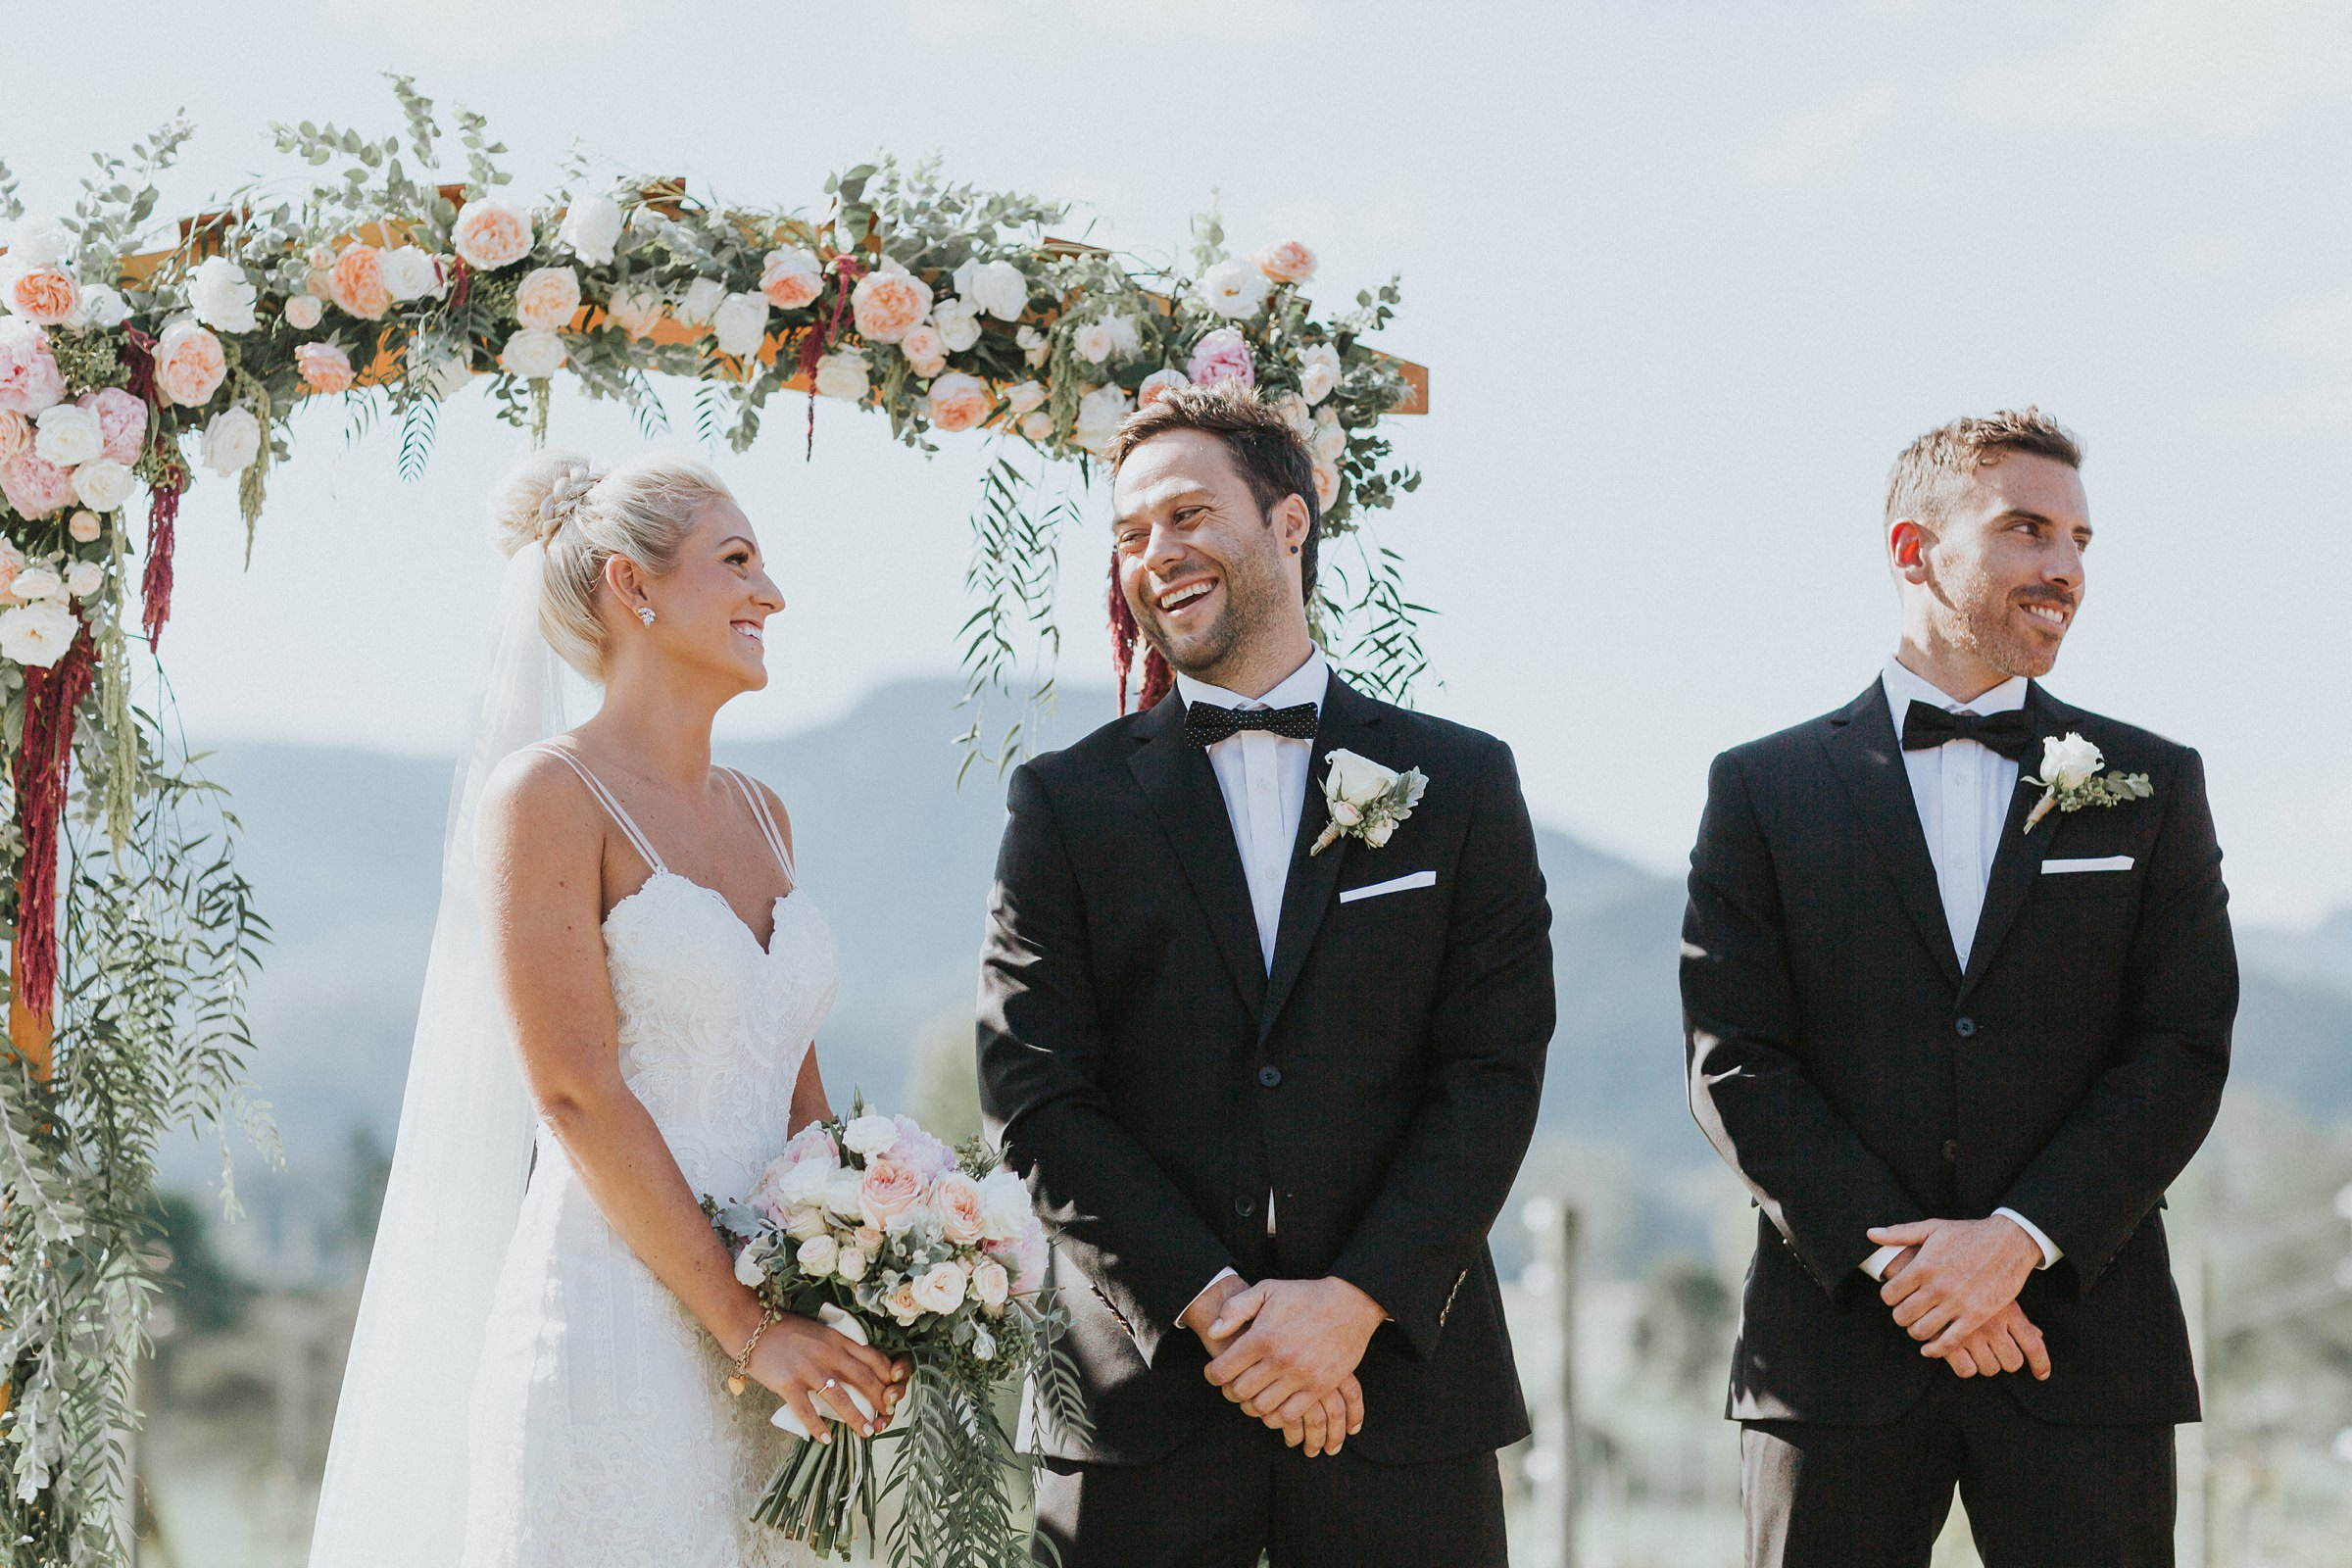 smiles and happiness from the bride and groom during wedding ceremony